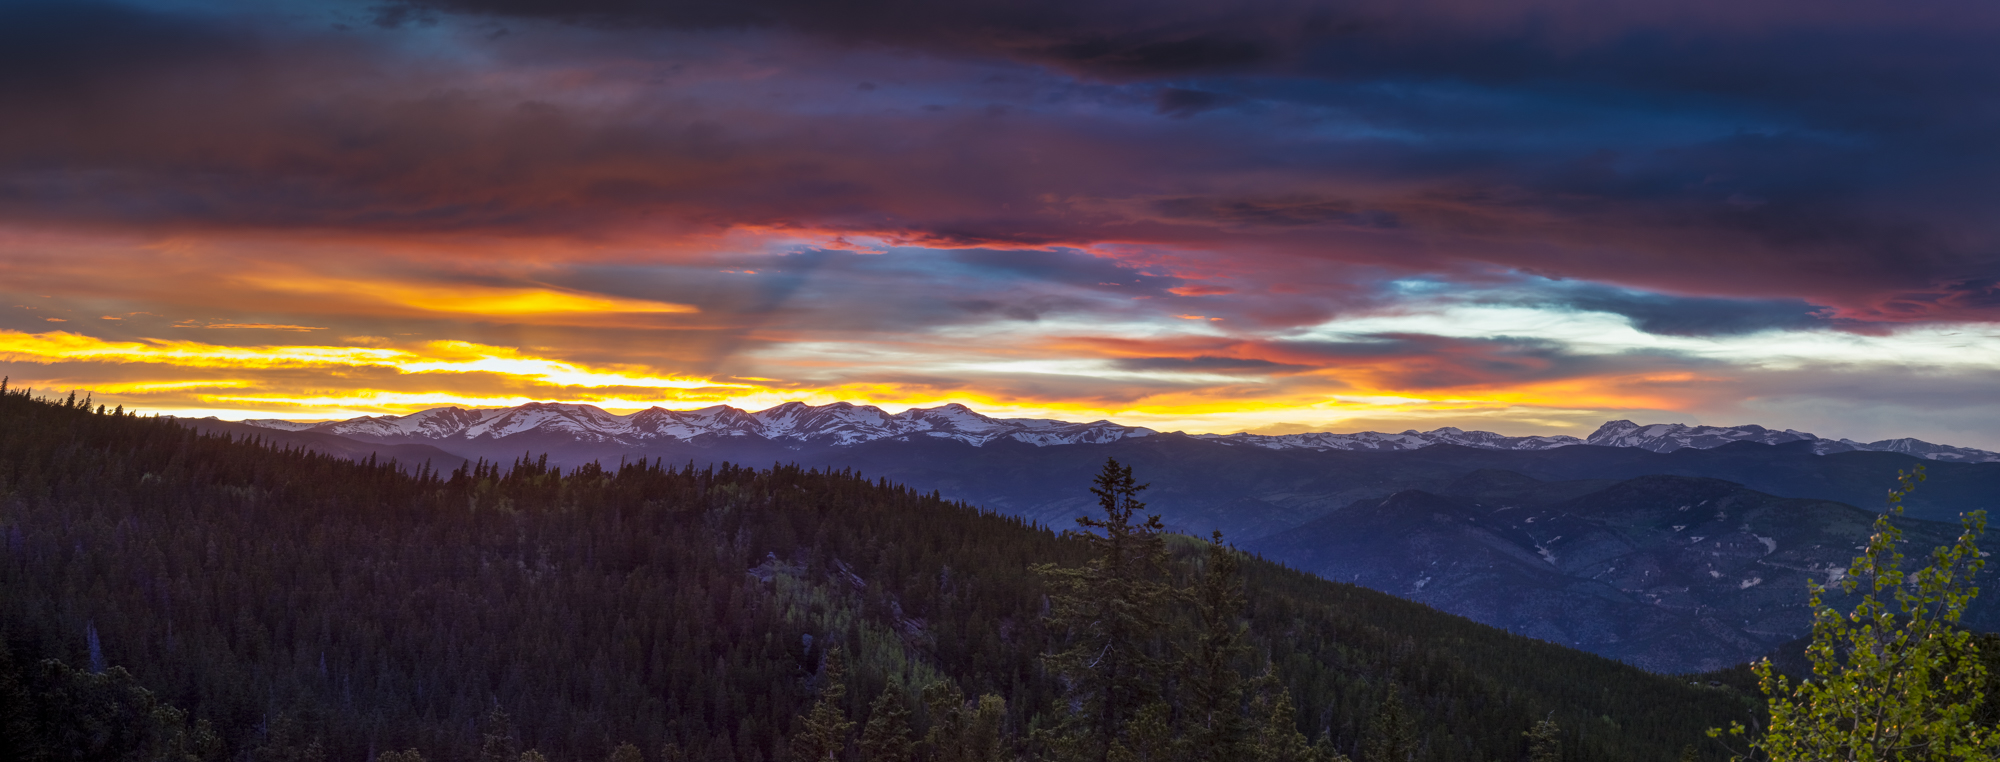 Continental Divide sunset Pano